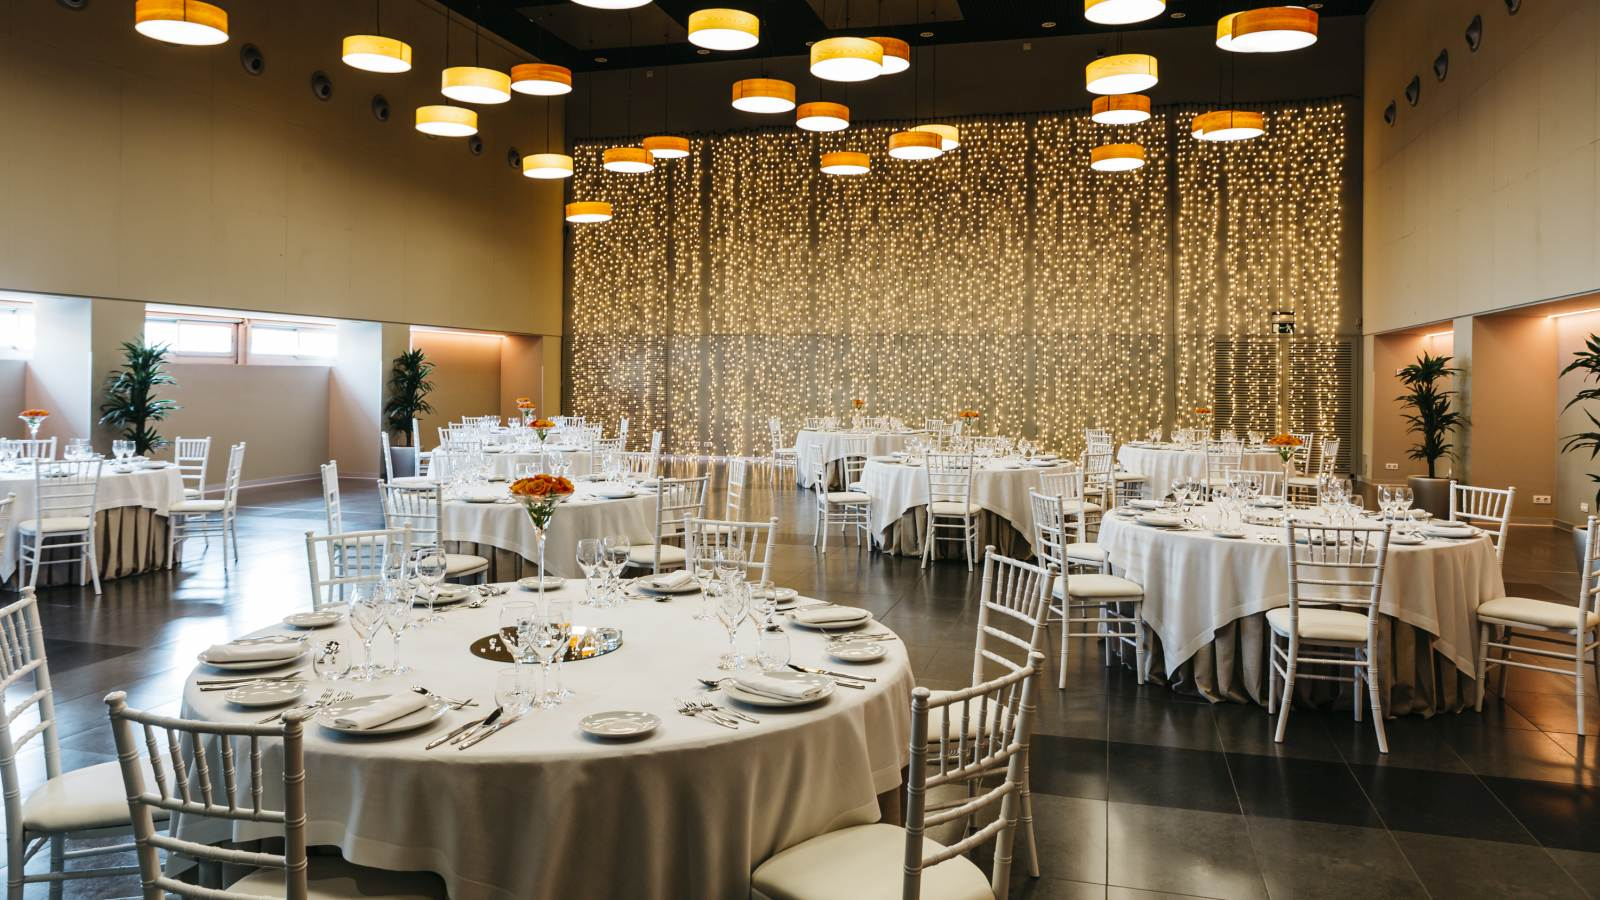 Luxury wedding venue Le Méridien Ra